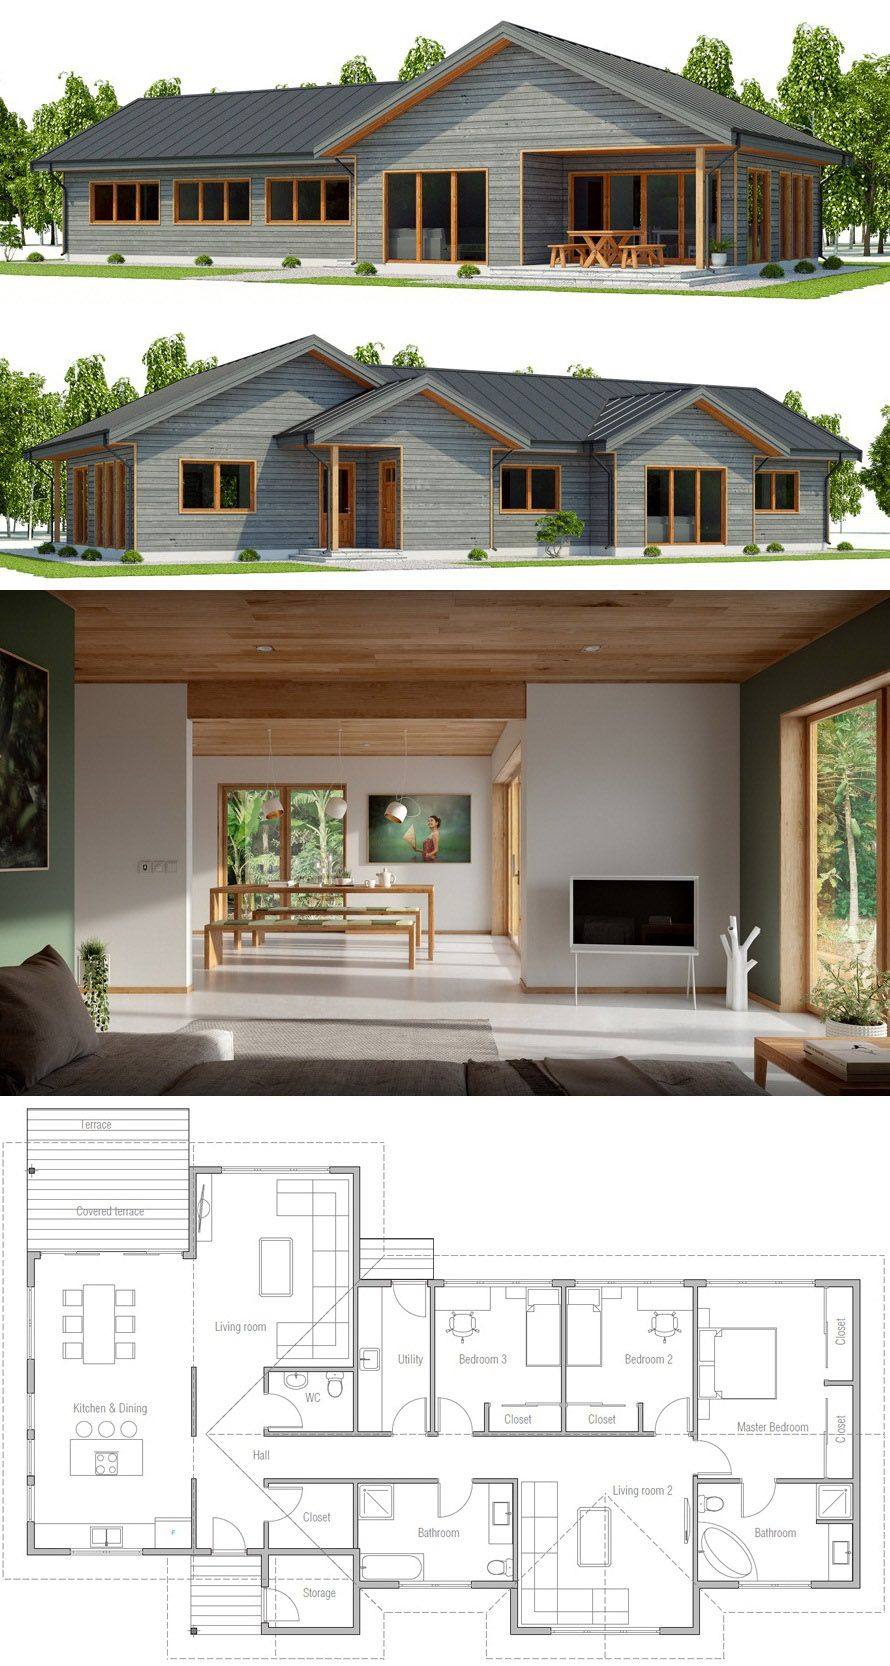 Classical house designs new plans modern dream small also best bungalow images home rh pinterest